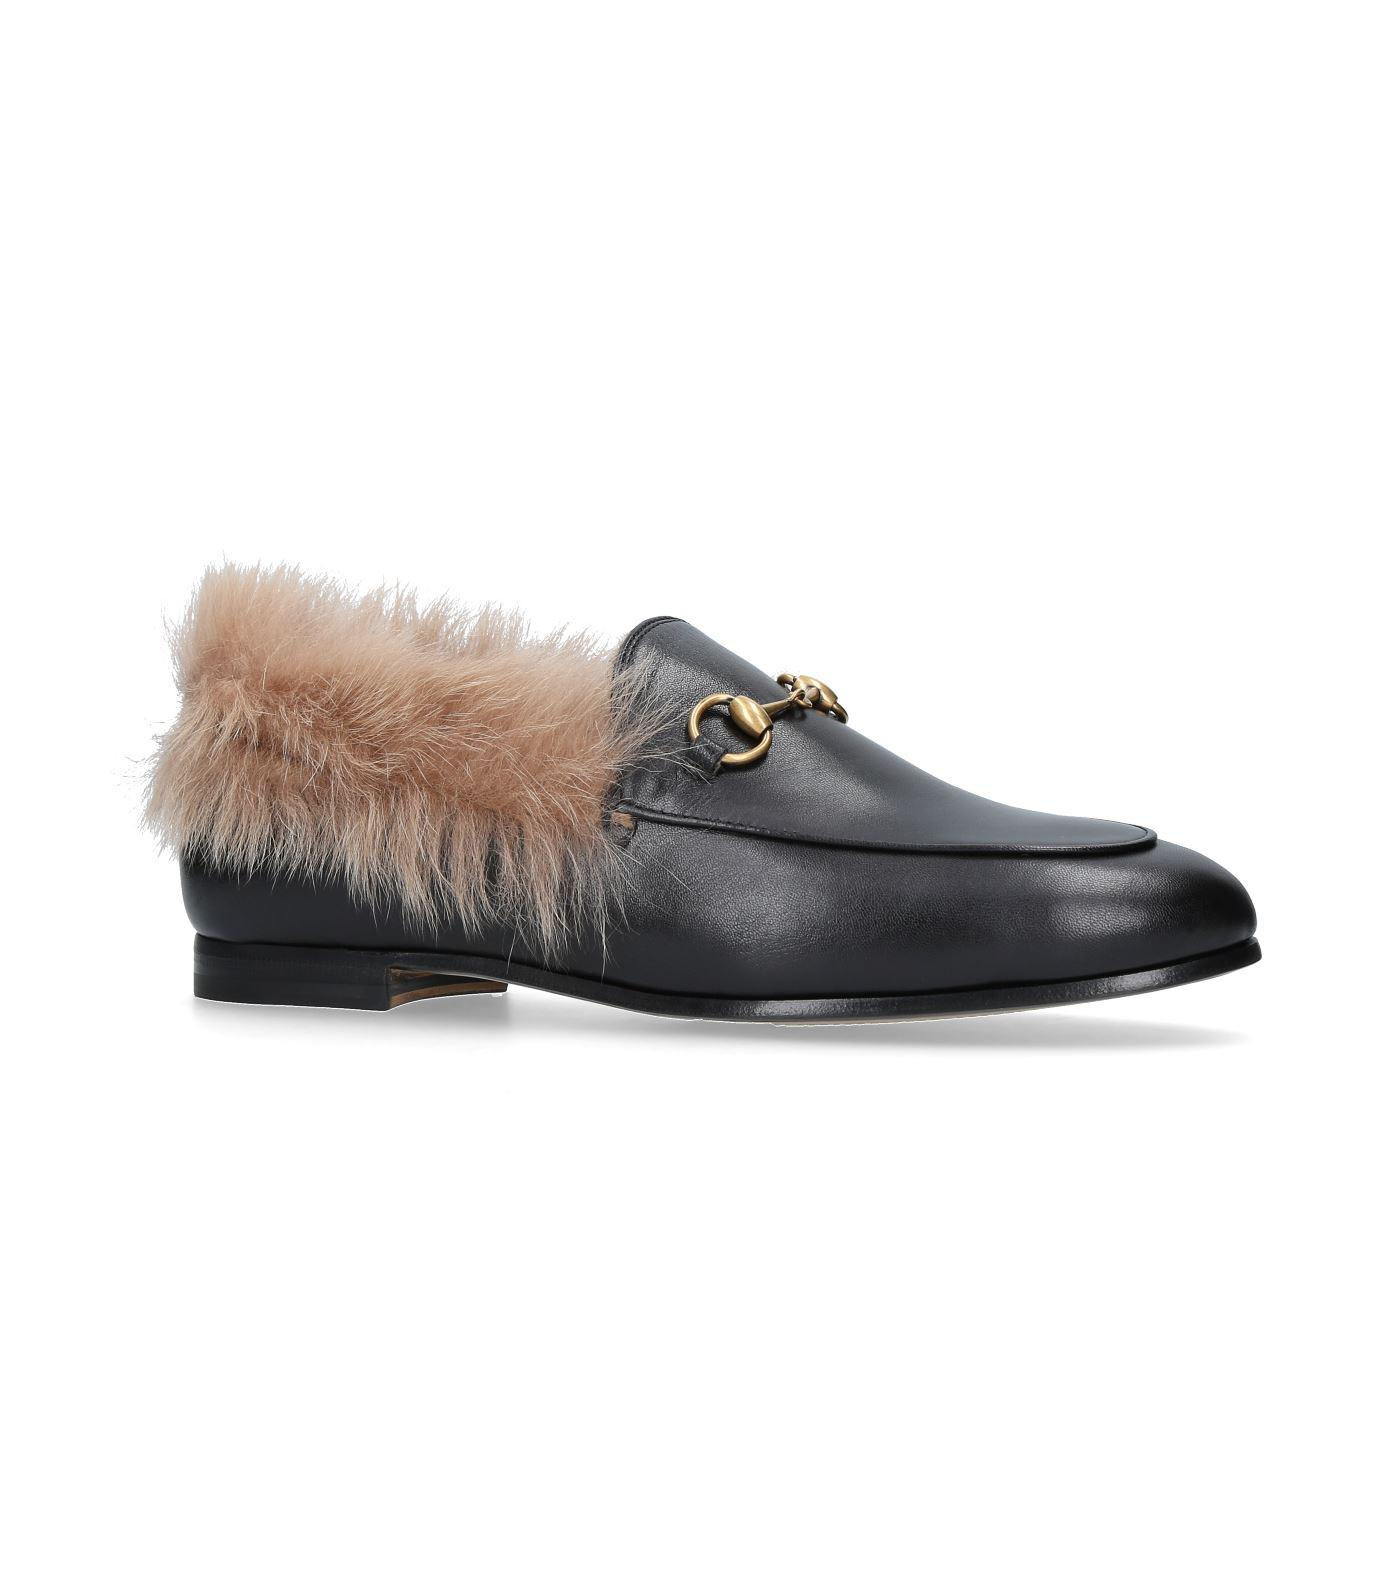 5149f0ca5 Lyst - Gucci Jordaan Fur Lined Loafers in Black - Save 24%